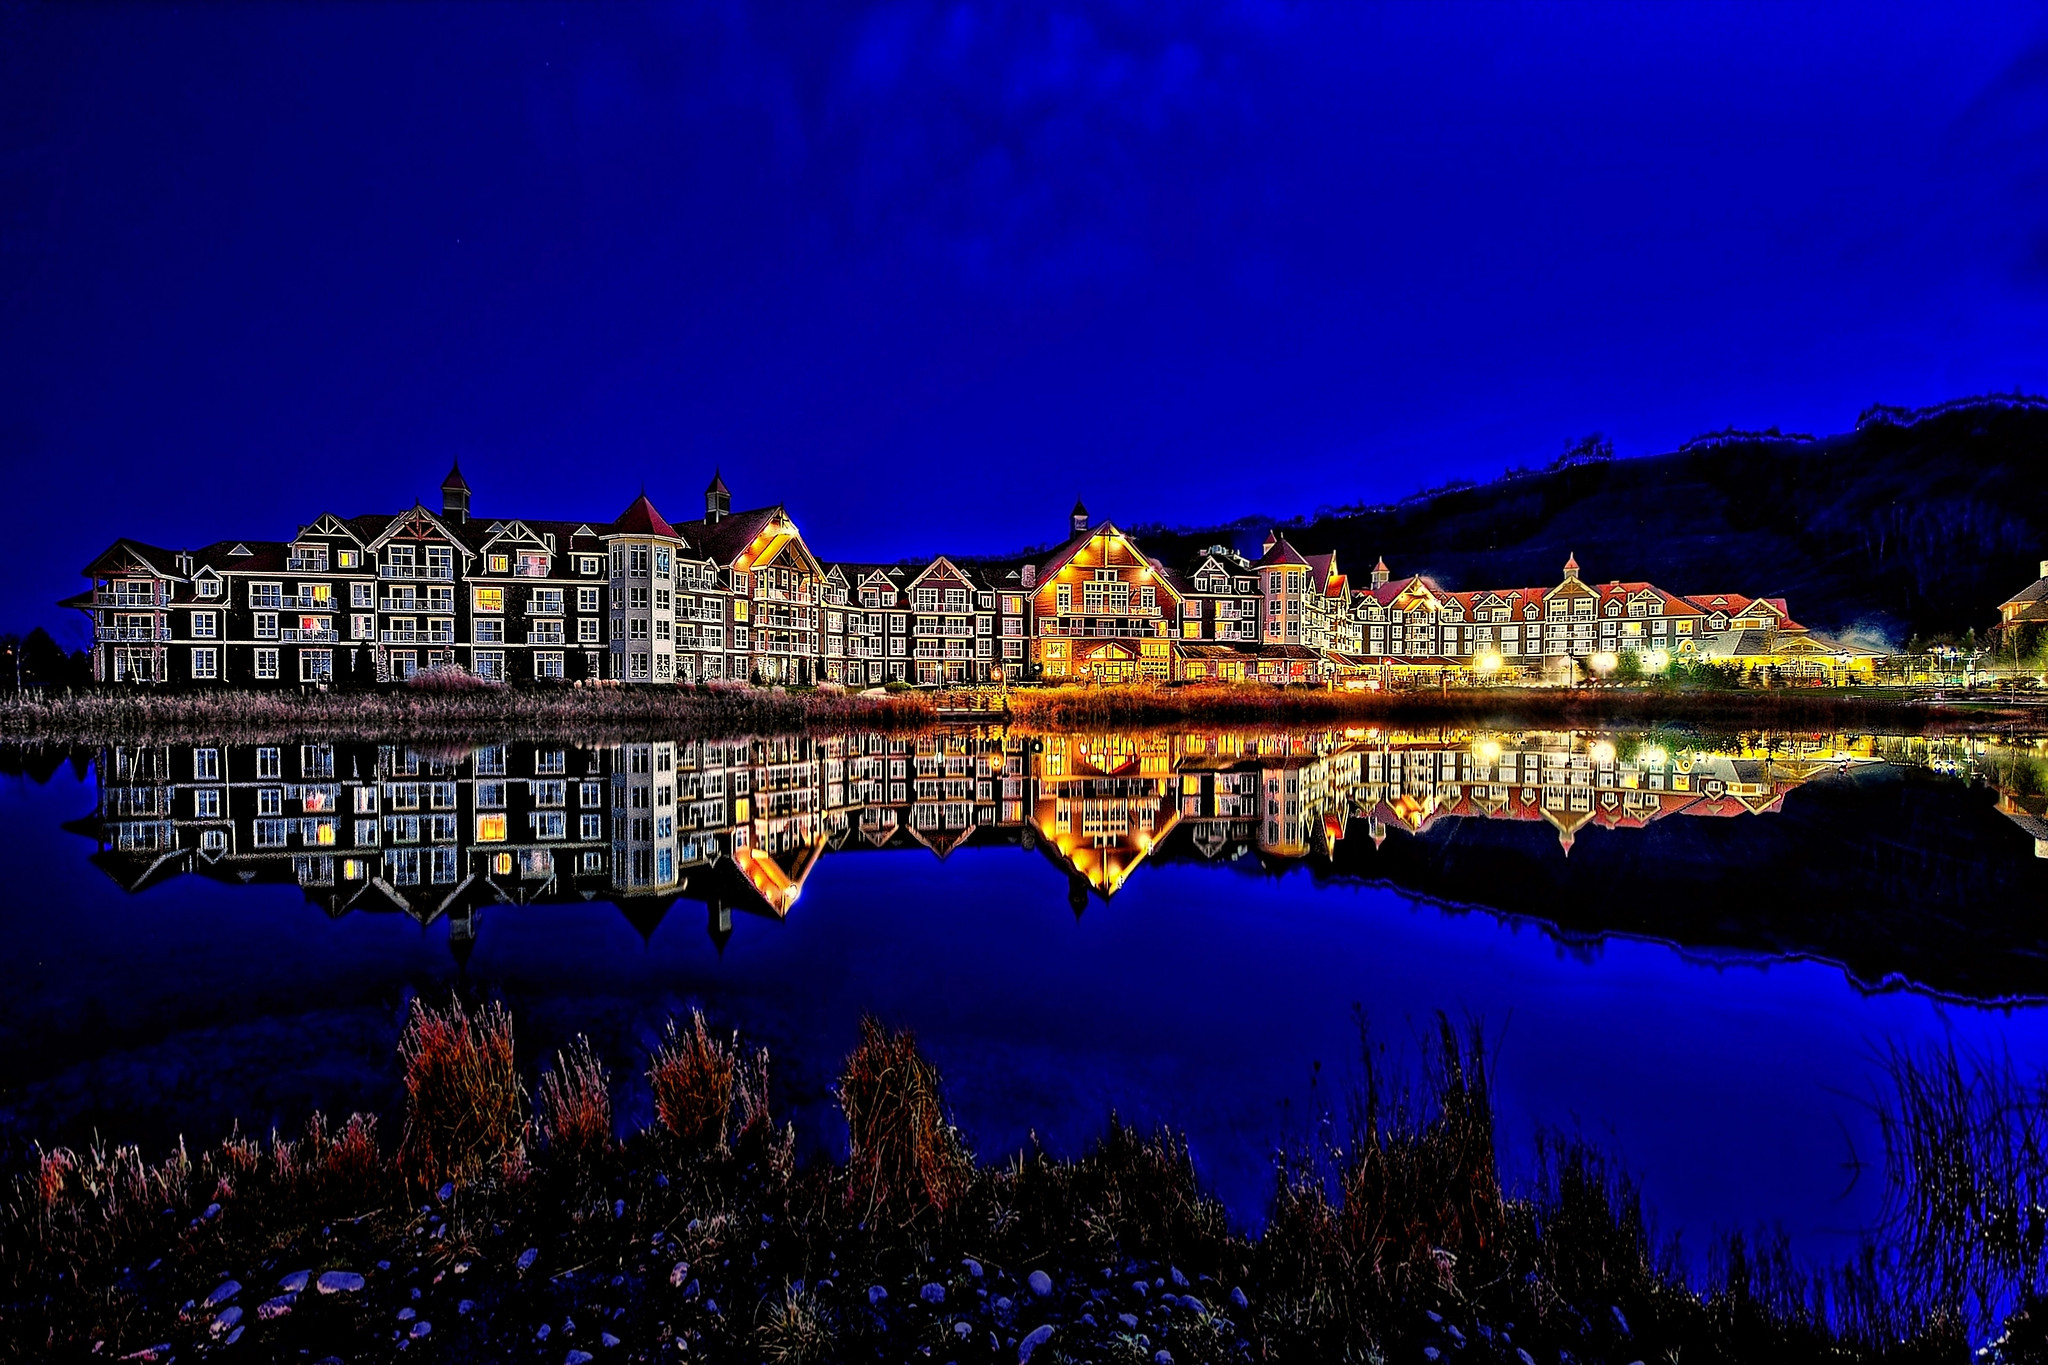 bluemountains westin blue hour reflection